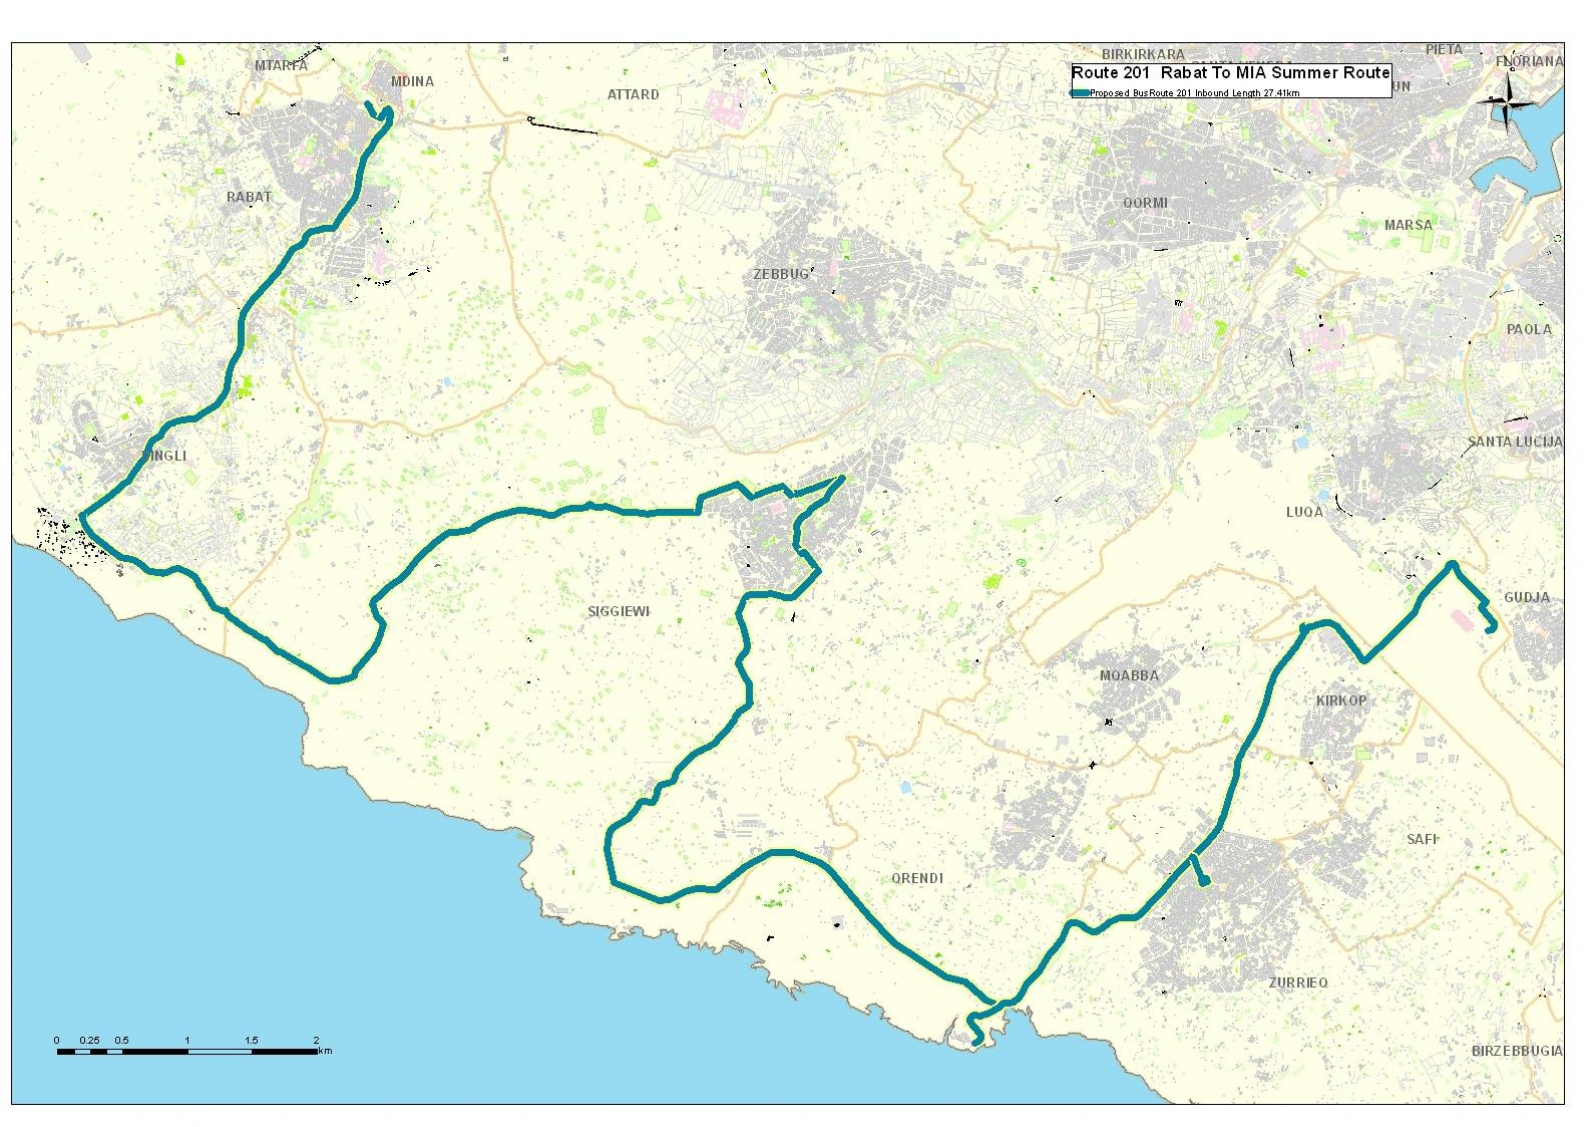 Land-current-network-routes-and-schedules-Dingli-Mtarfa-Rabat-20